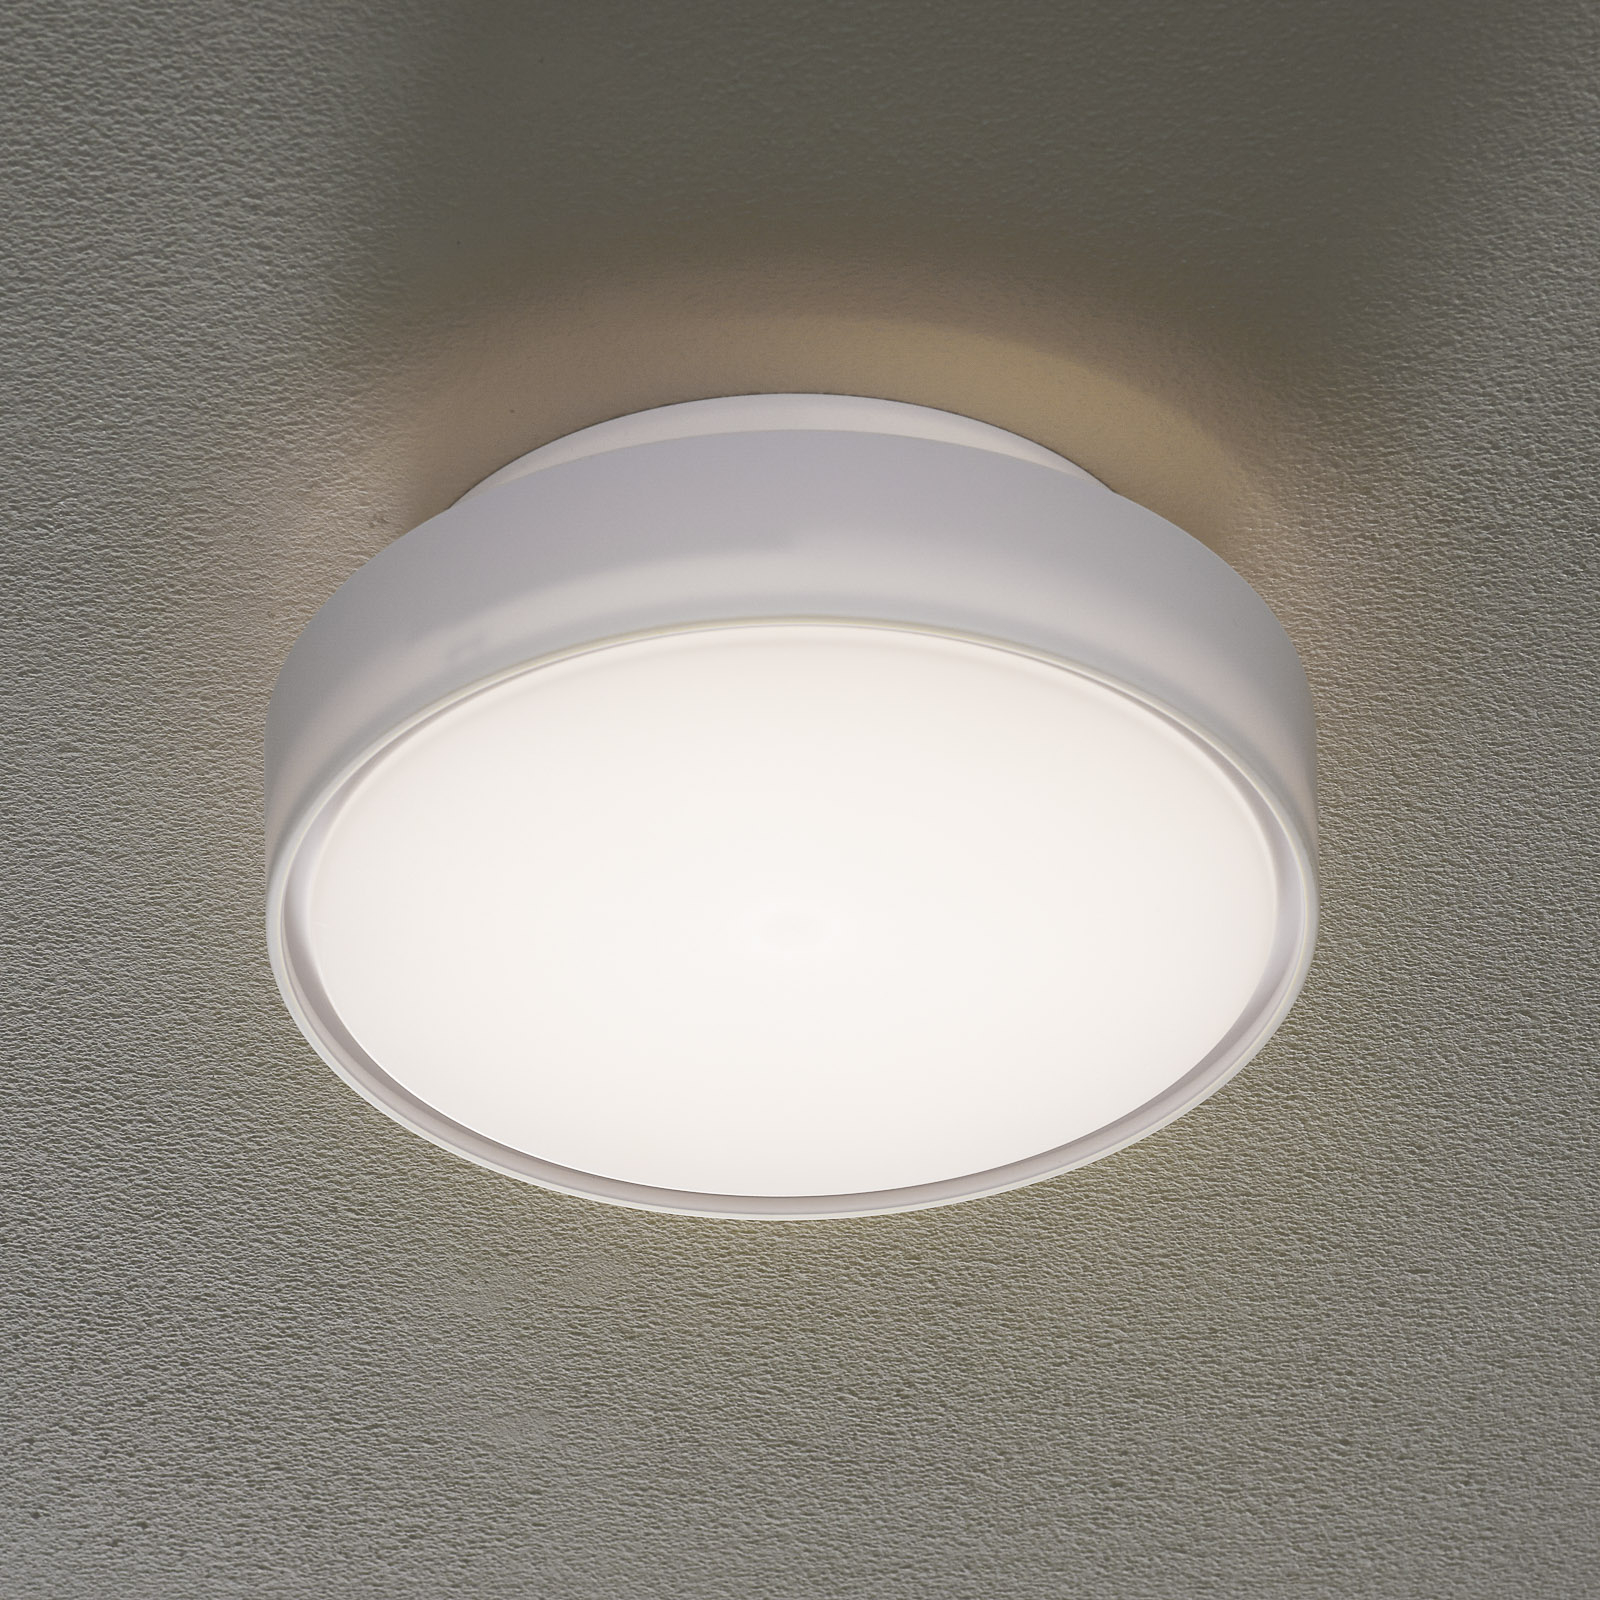 LED-taklampe Hatton IP65 25 cm